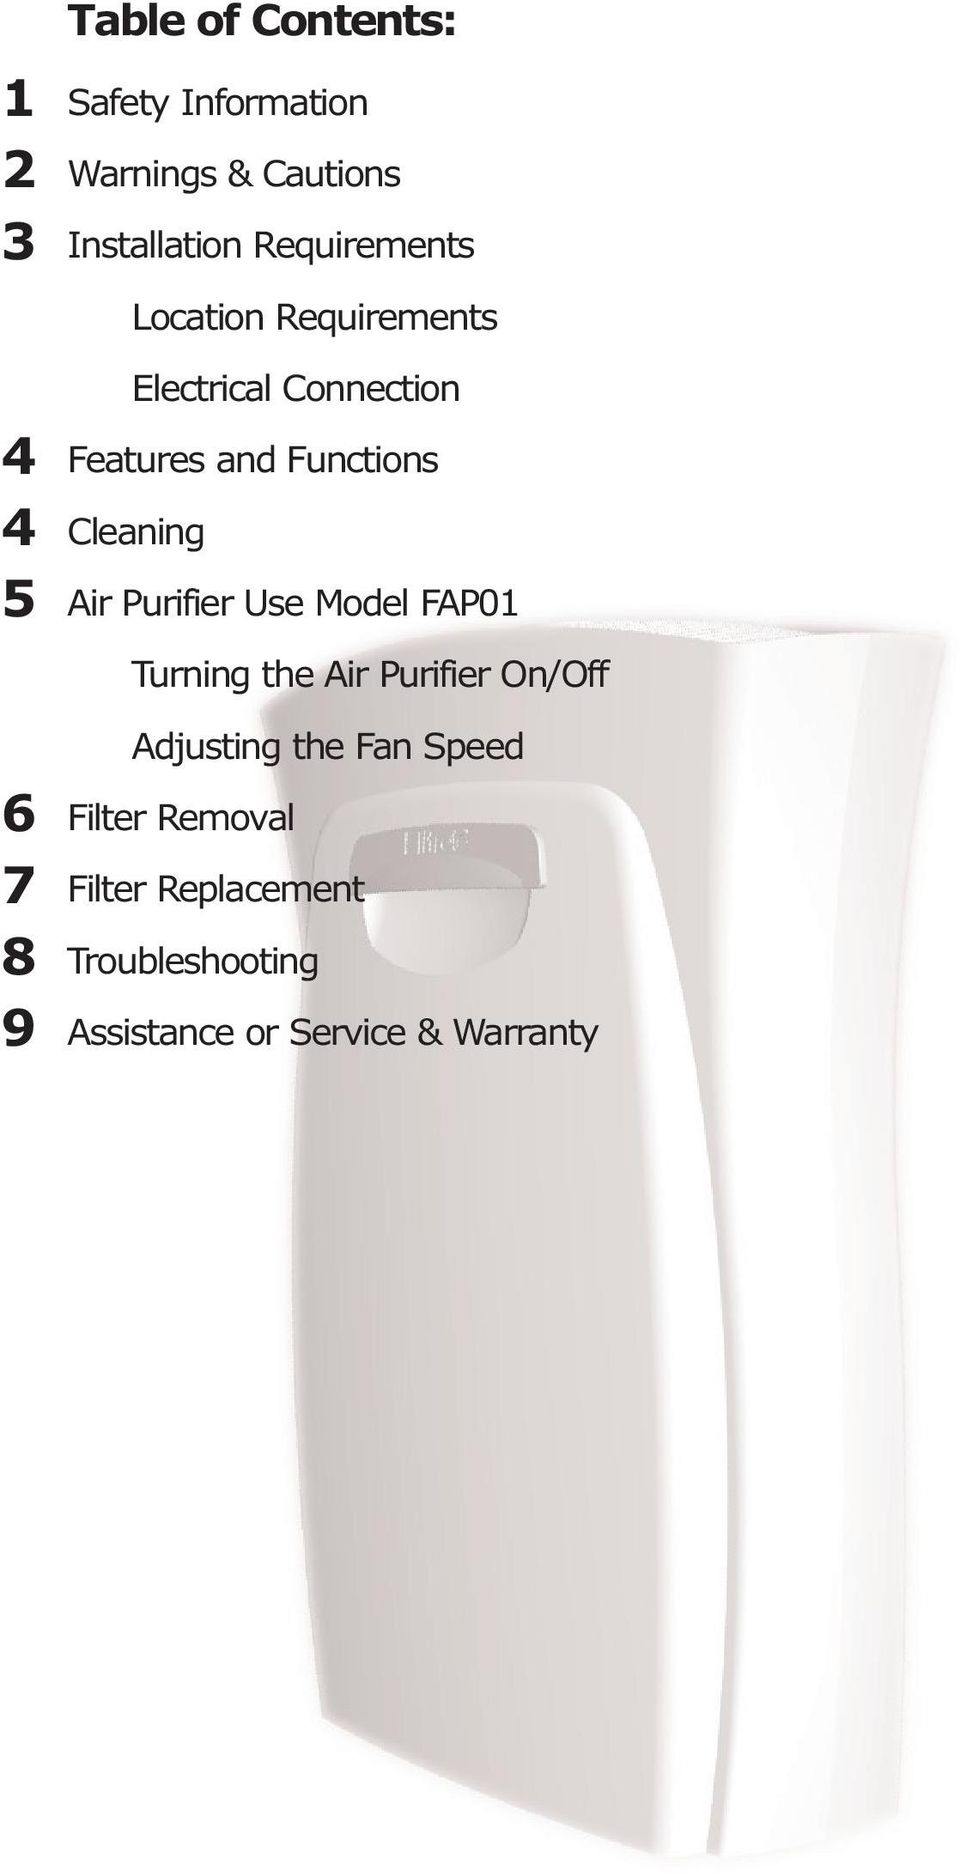 Functions Cleaning Air Purifier Use Model FAP01 Turning the Air Purifier On/Off